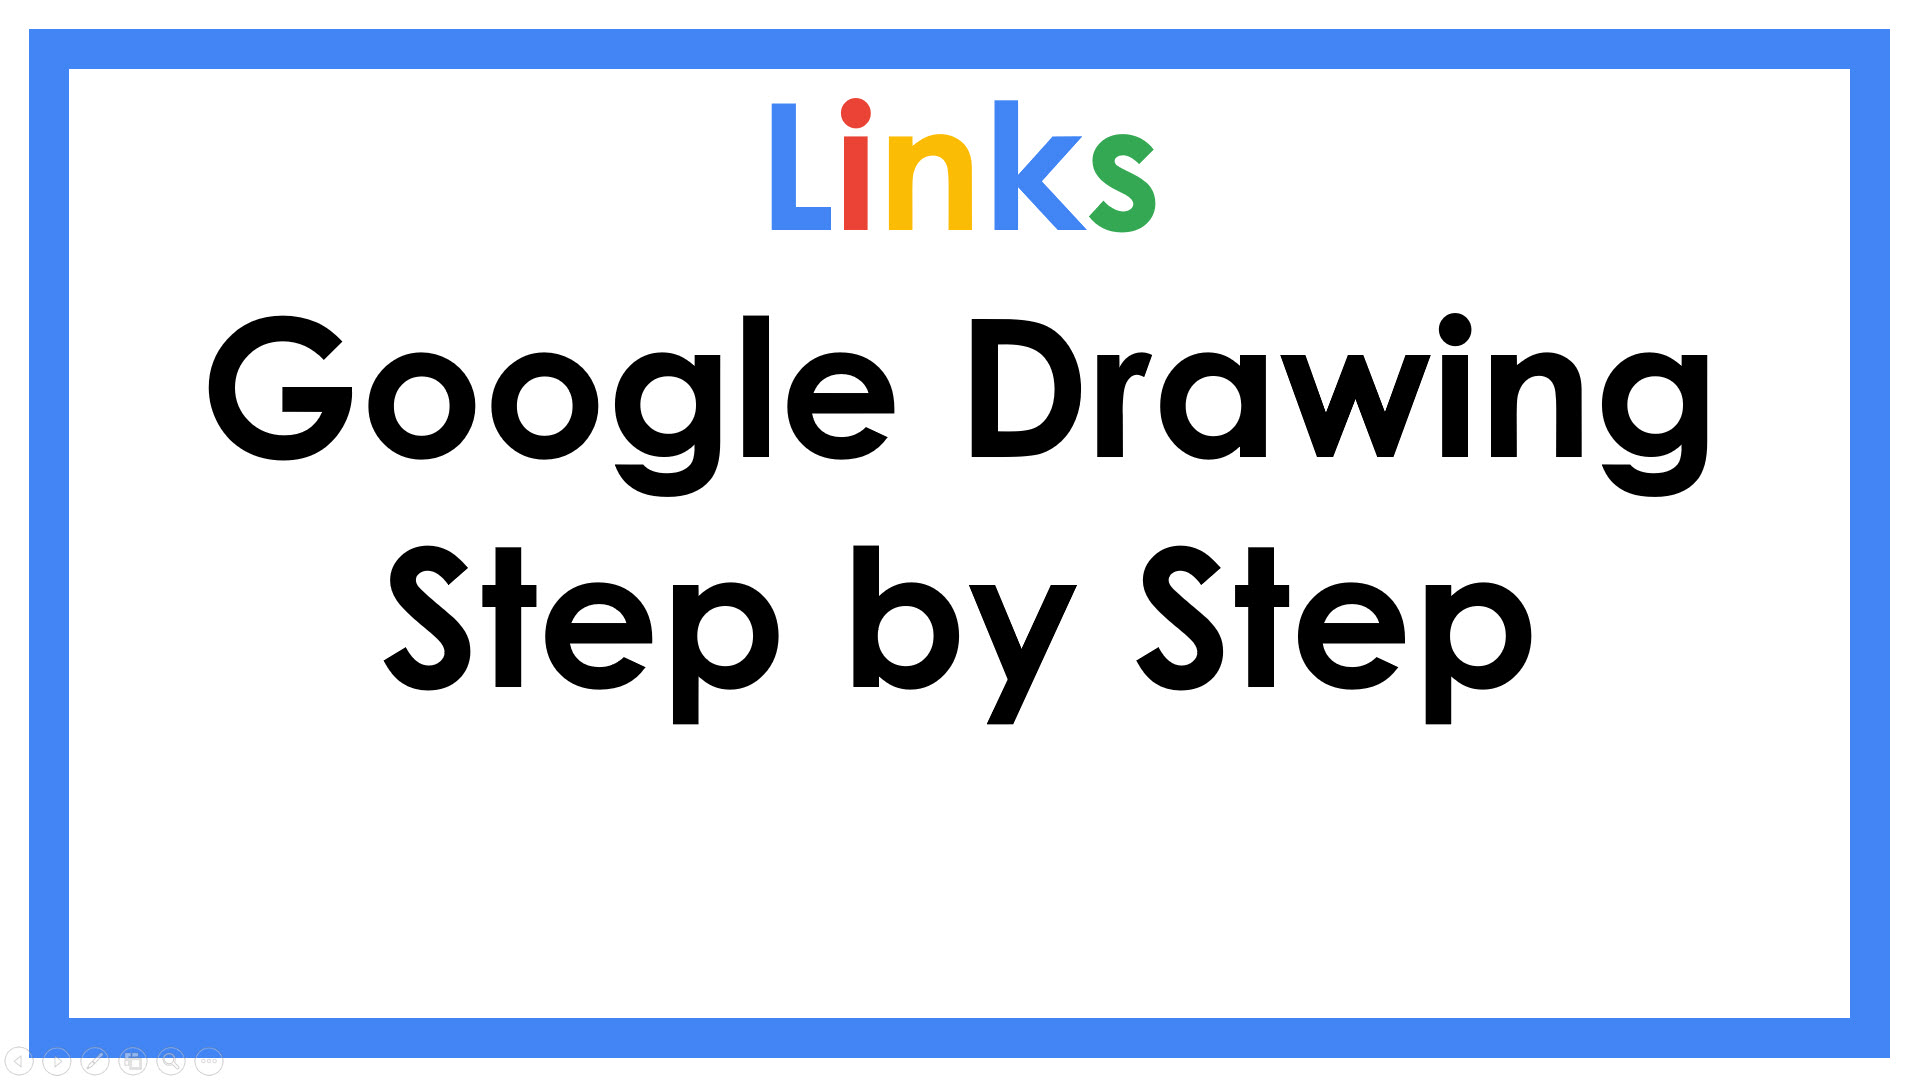 Google Drawing Step by Step